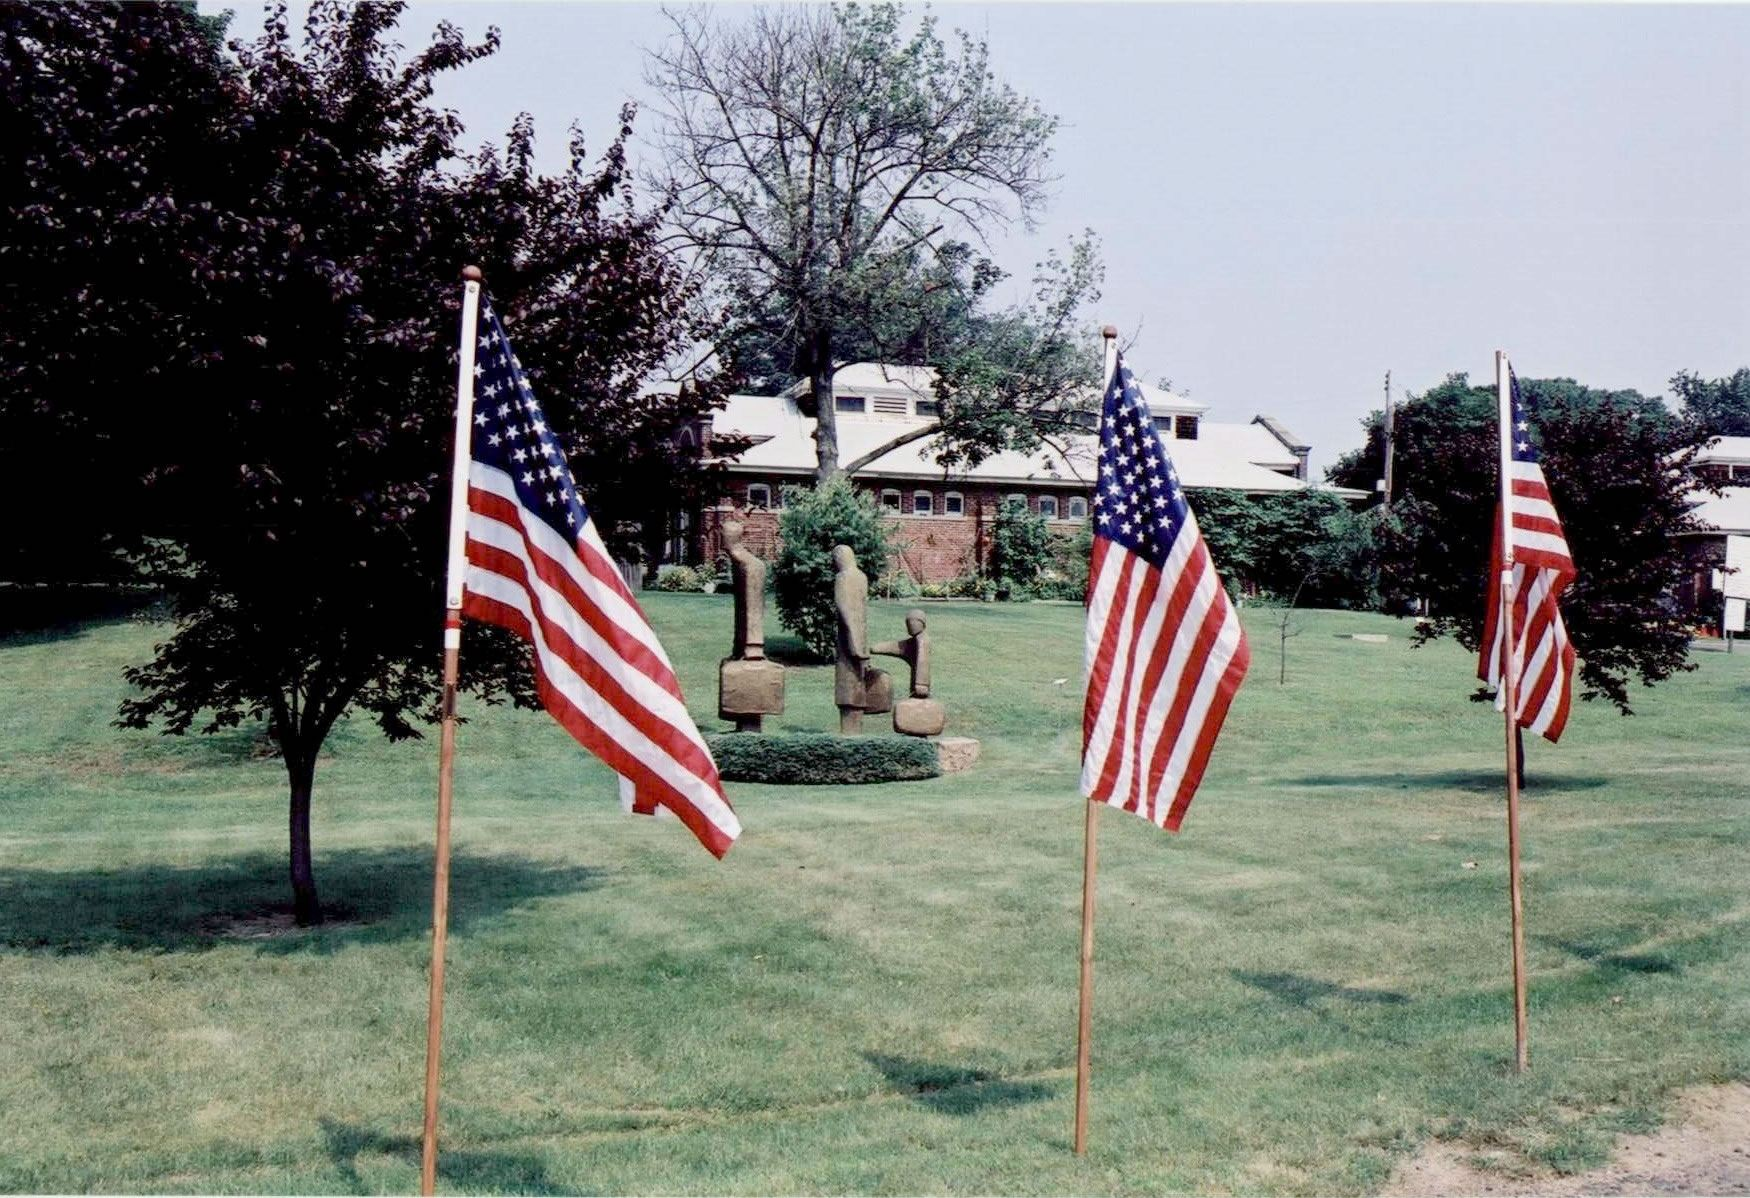 Flags set up in front of statue